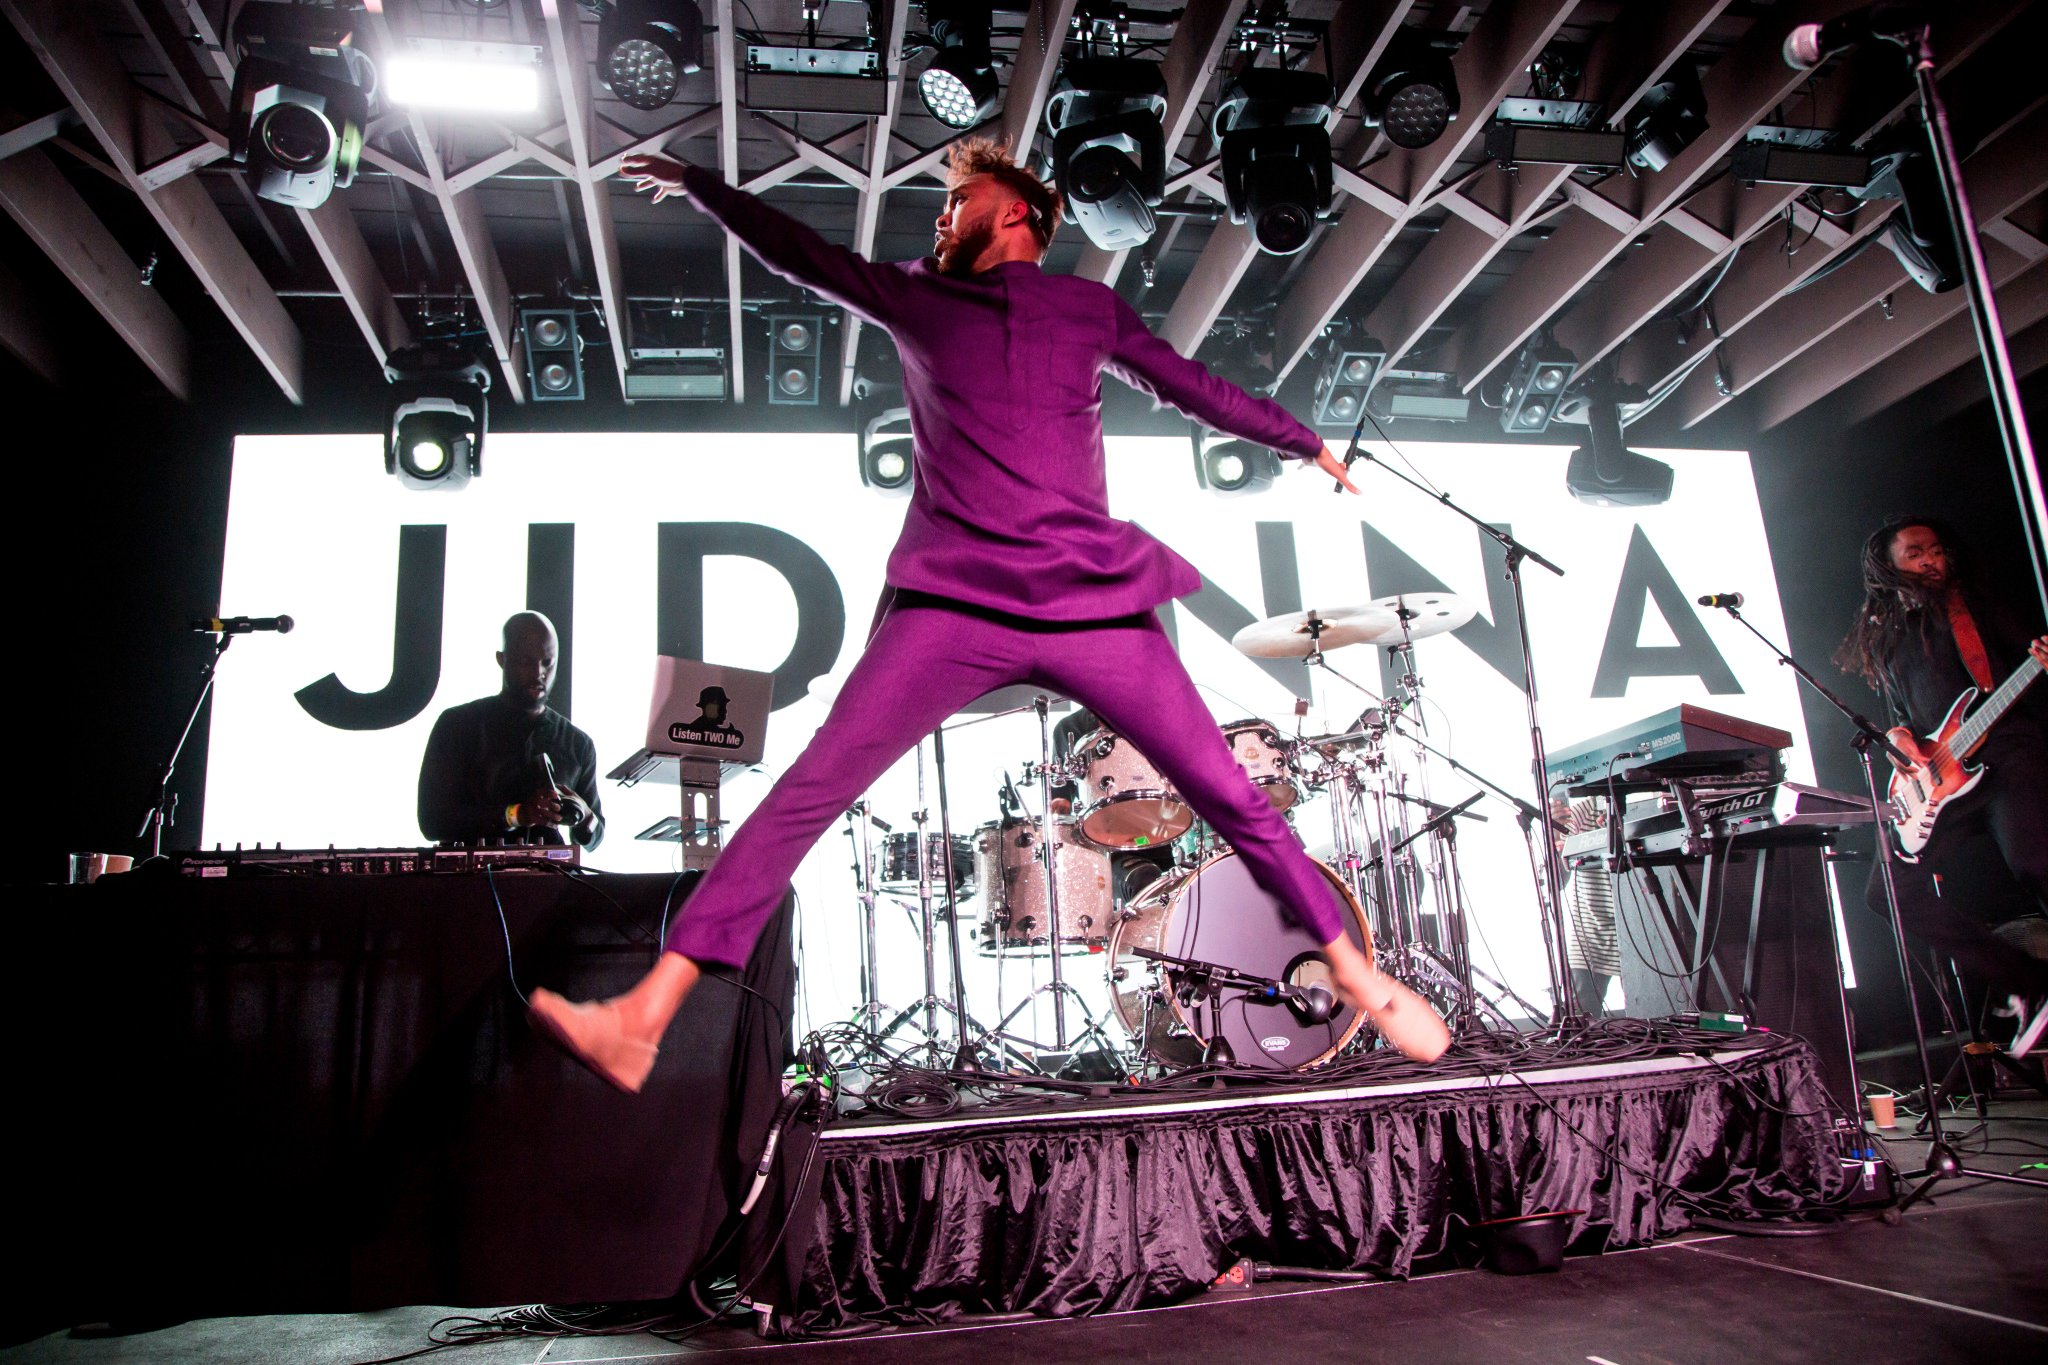 Go ahead and jump!  @Jidenna's laying down eccentric beats and fierce flows at #YouTube #SXSW https://t.co/tpnjnldsss